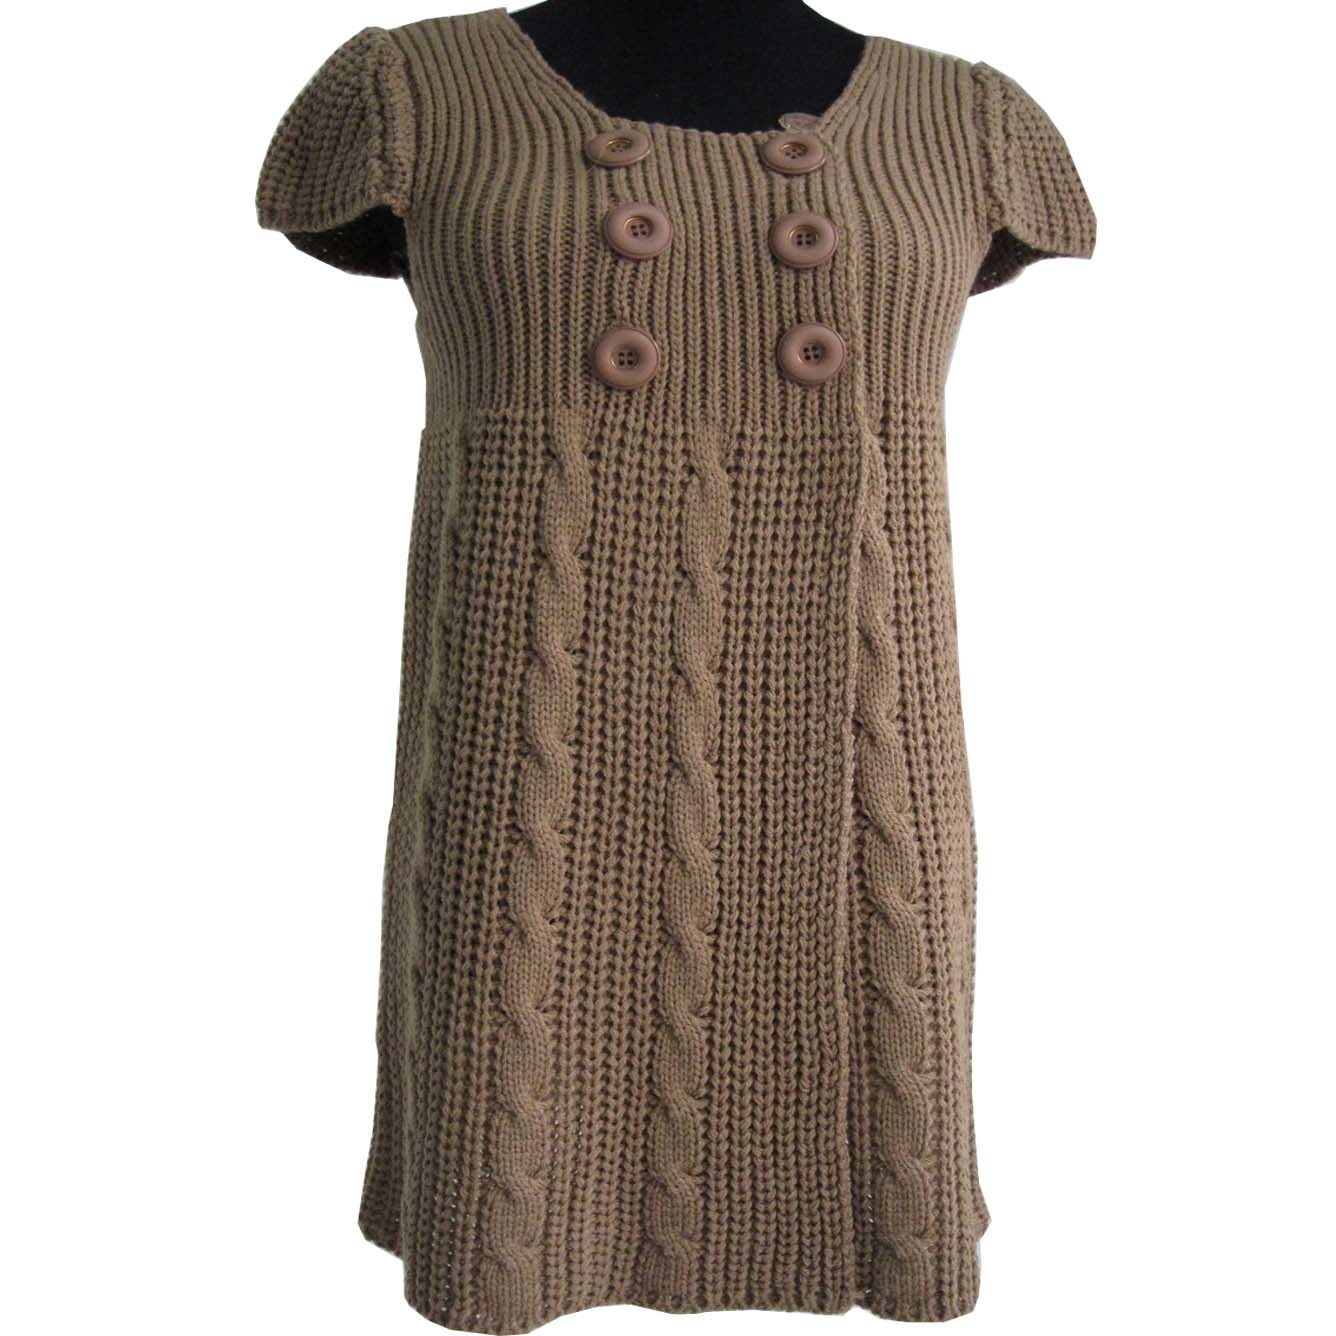 Knitting Sweaters For Girls : Knit dresses for women